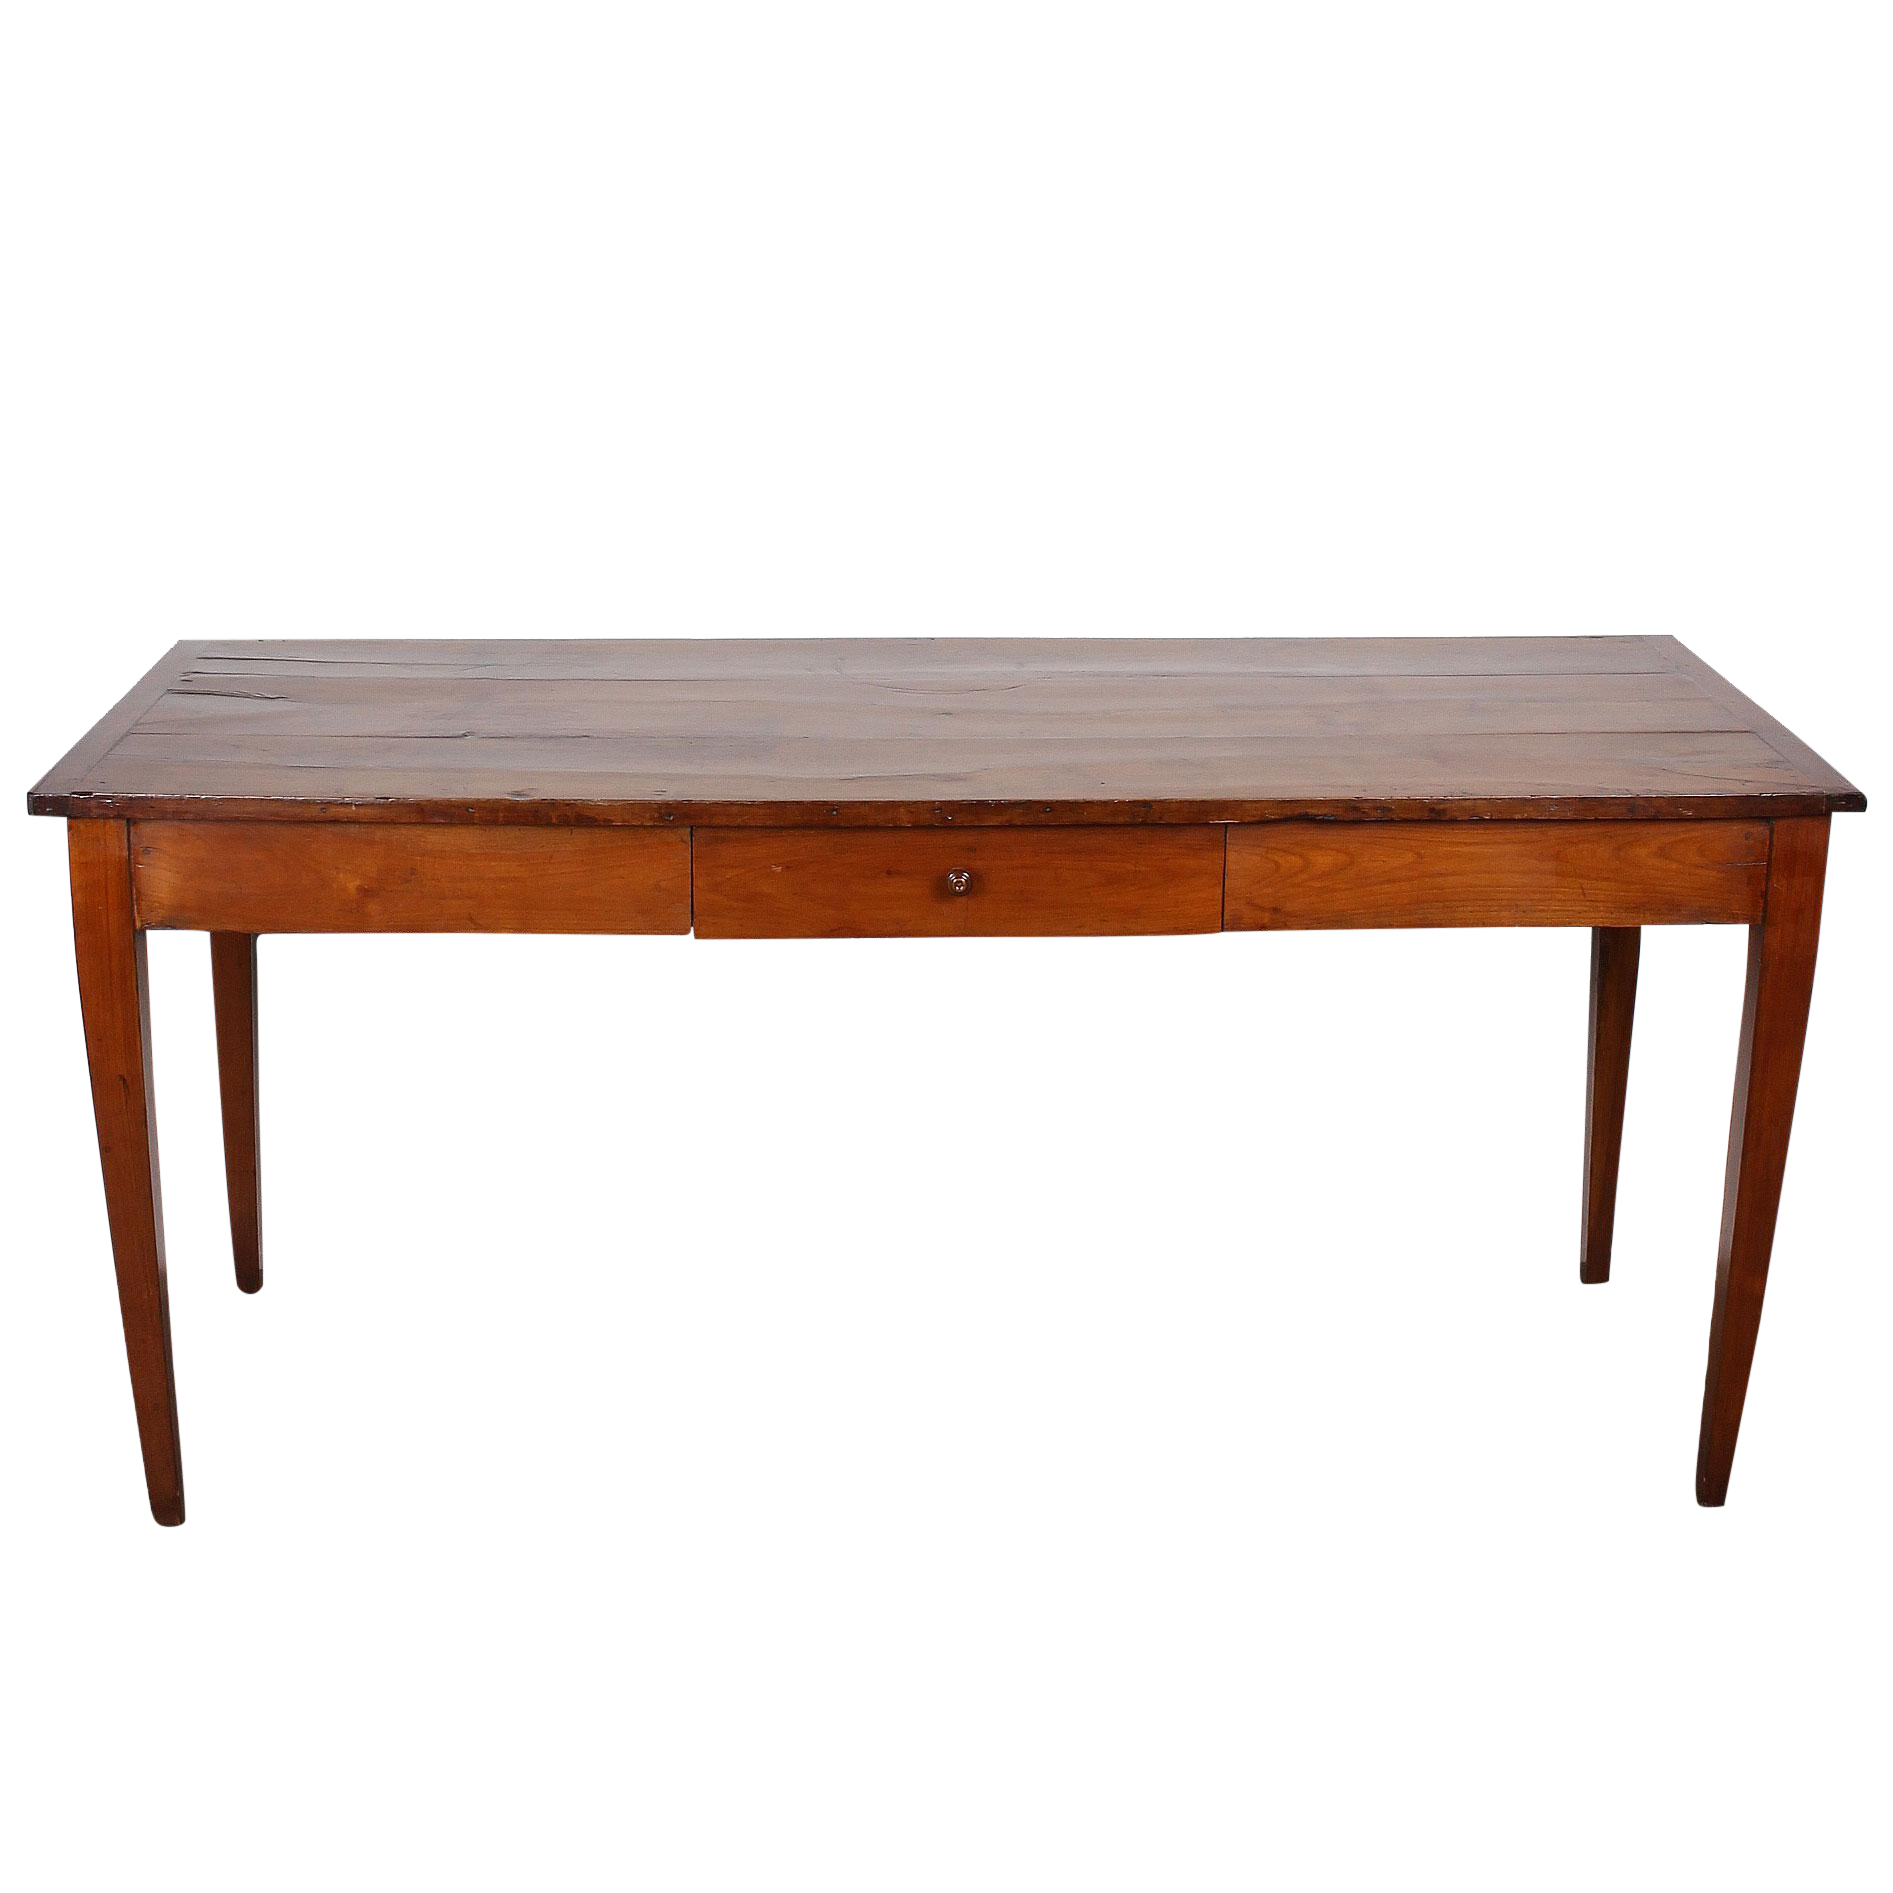 19th C. Italian Cherry Wood Farm Table